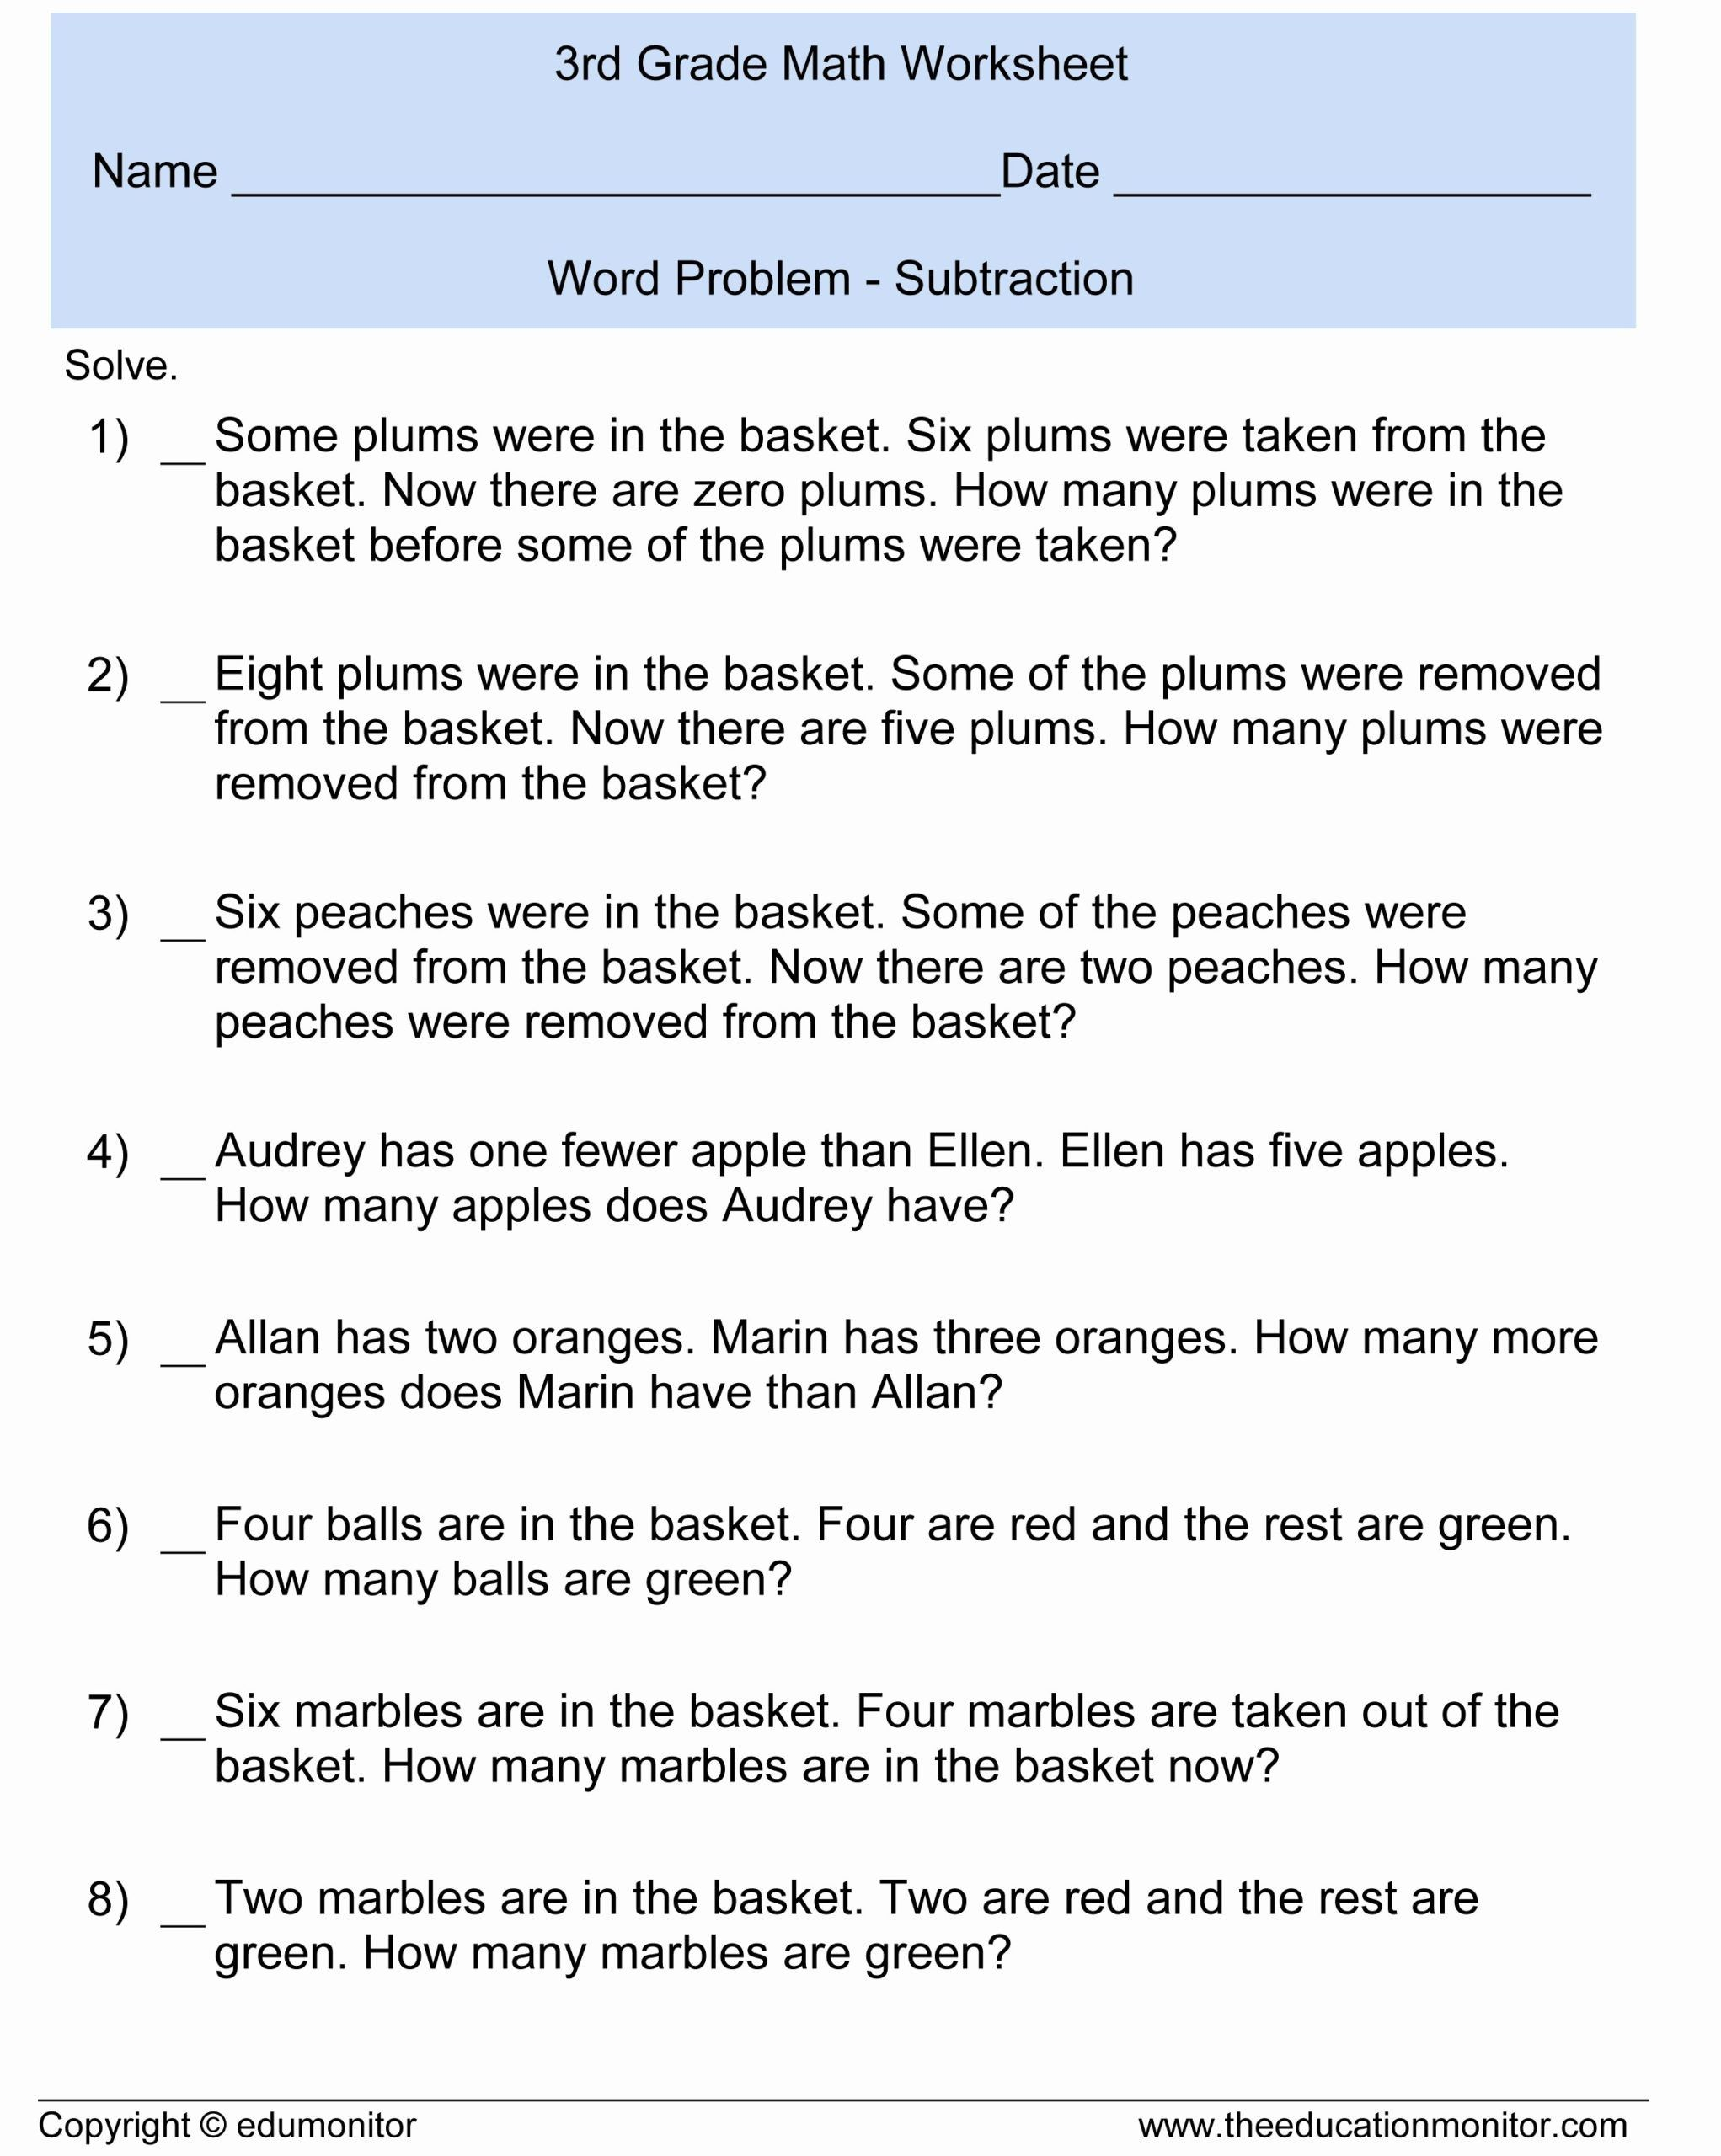 Matrix Word Problems Worksheets   Printable Worksheets and Activities for  Teachers [ 2560 x 2043 Pixel ]